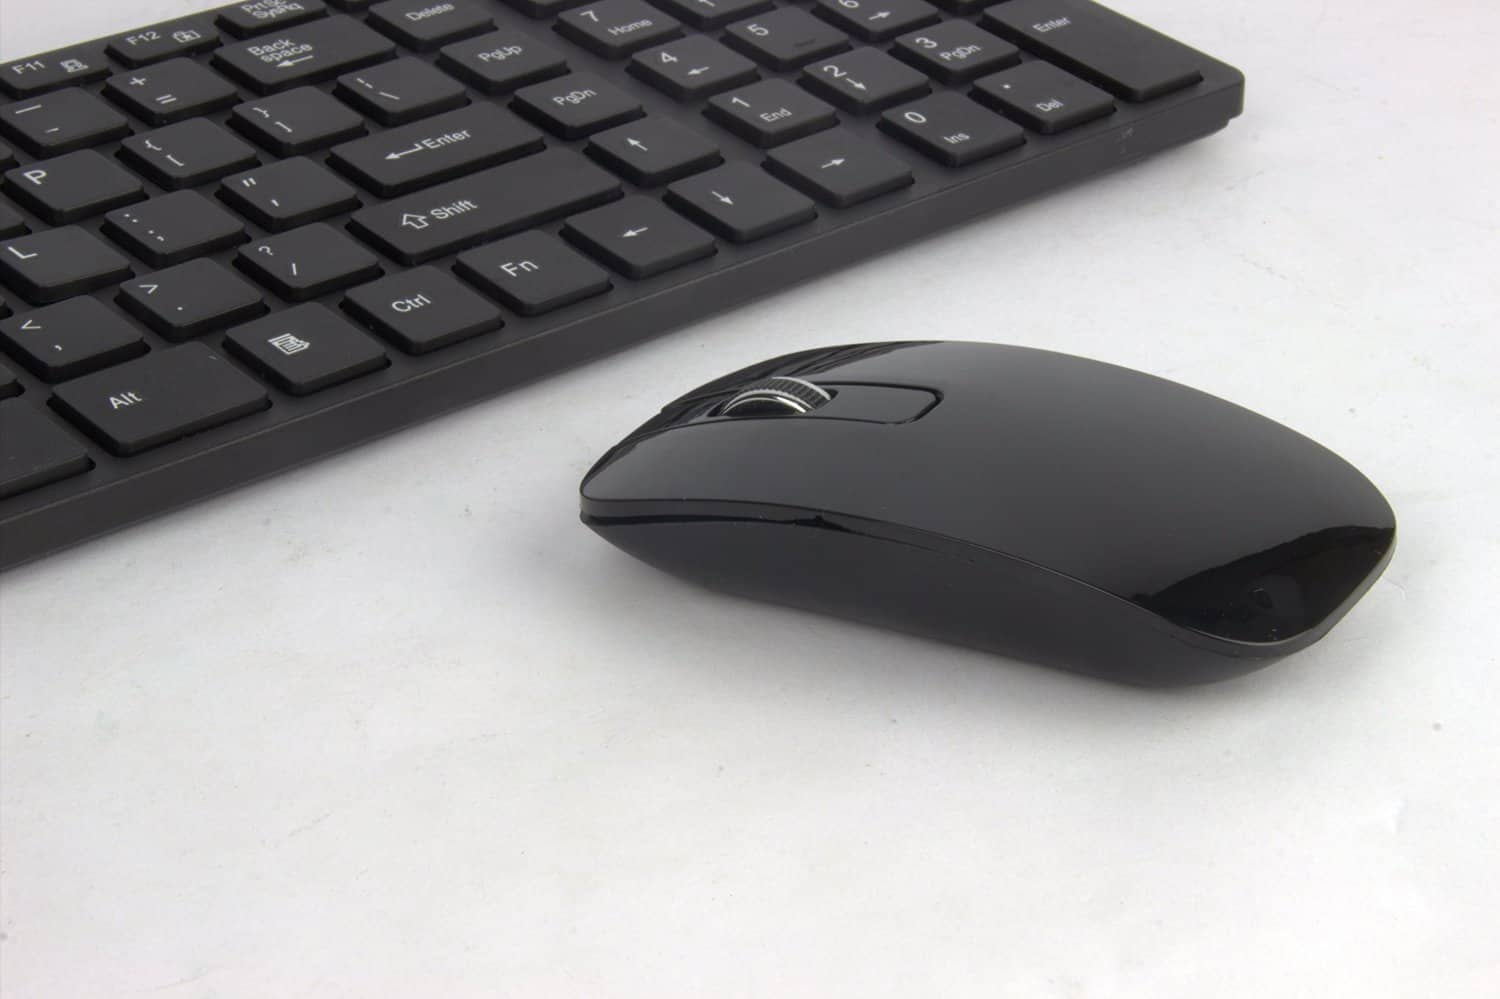 Bluefinger Keyboard and Mouse Review